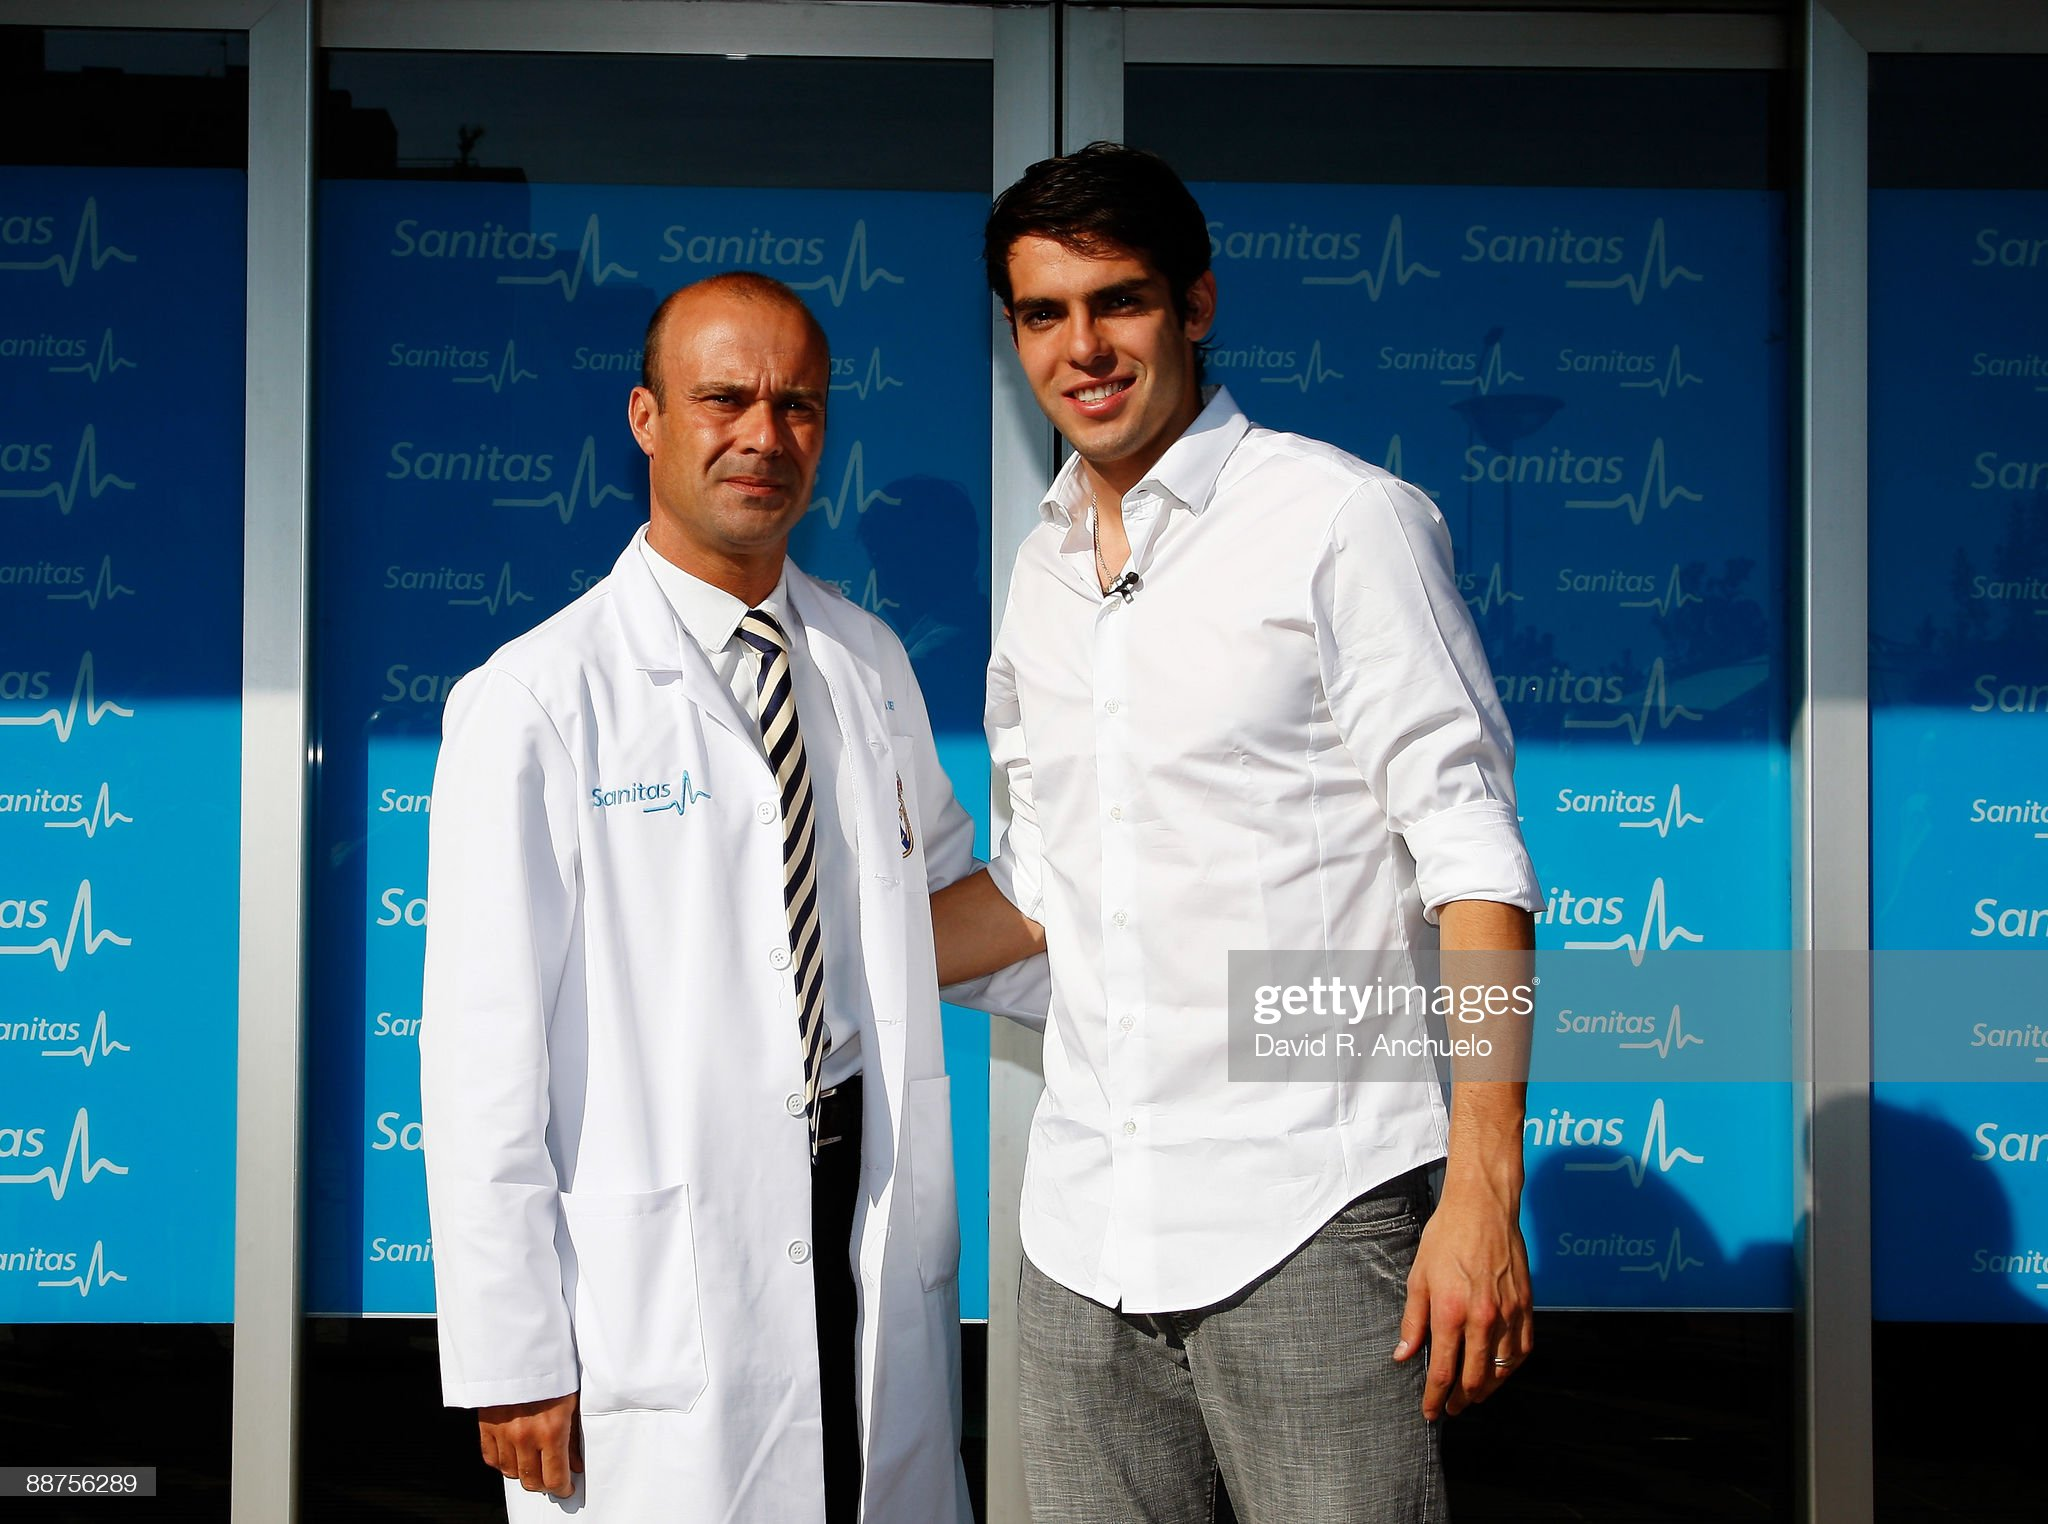 ¿Cuánto mide Carlos Díez? (Médico) Kaka-attends-a-real-madrid-medical-before-his-official-presentation-picture-id88756289?s=2048x2048